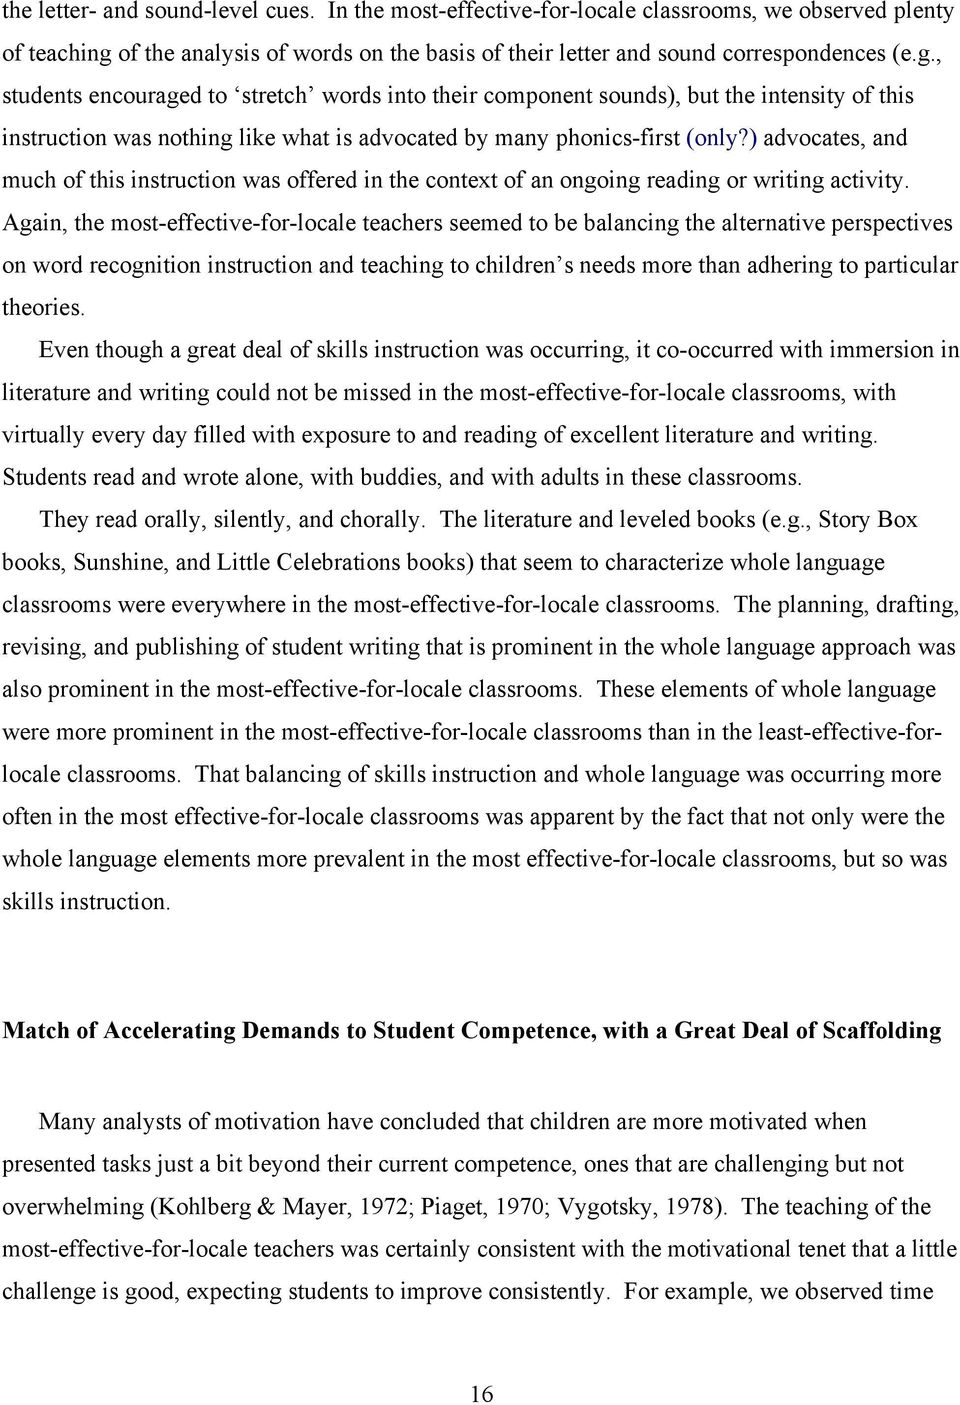 , students encouraged to stretch words into their component sounds), but the intensity of this instruction was nothing like what is advocated by many phonics-first (only?